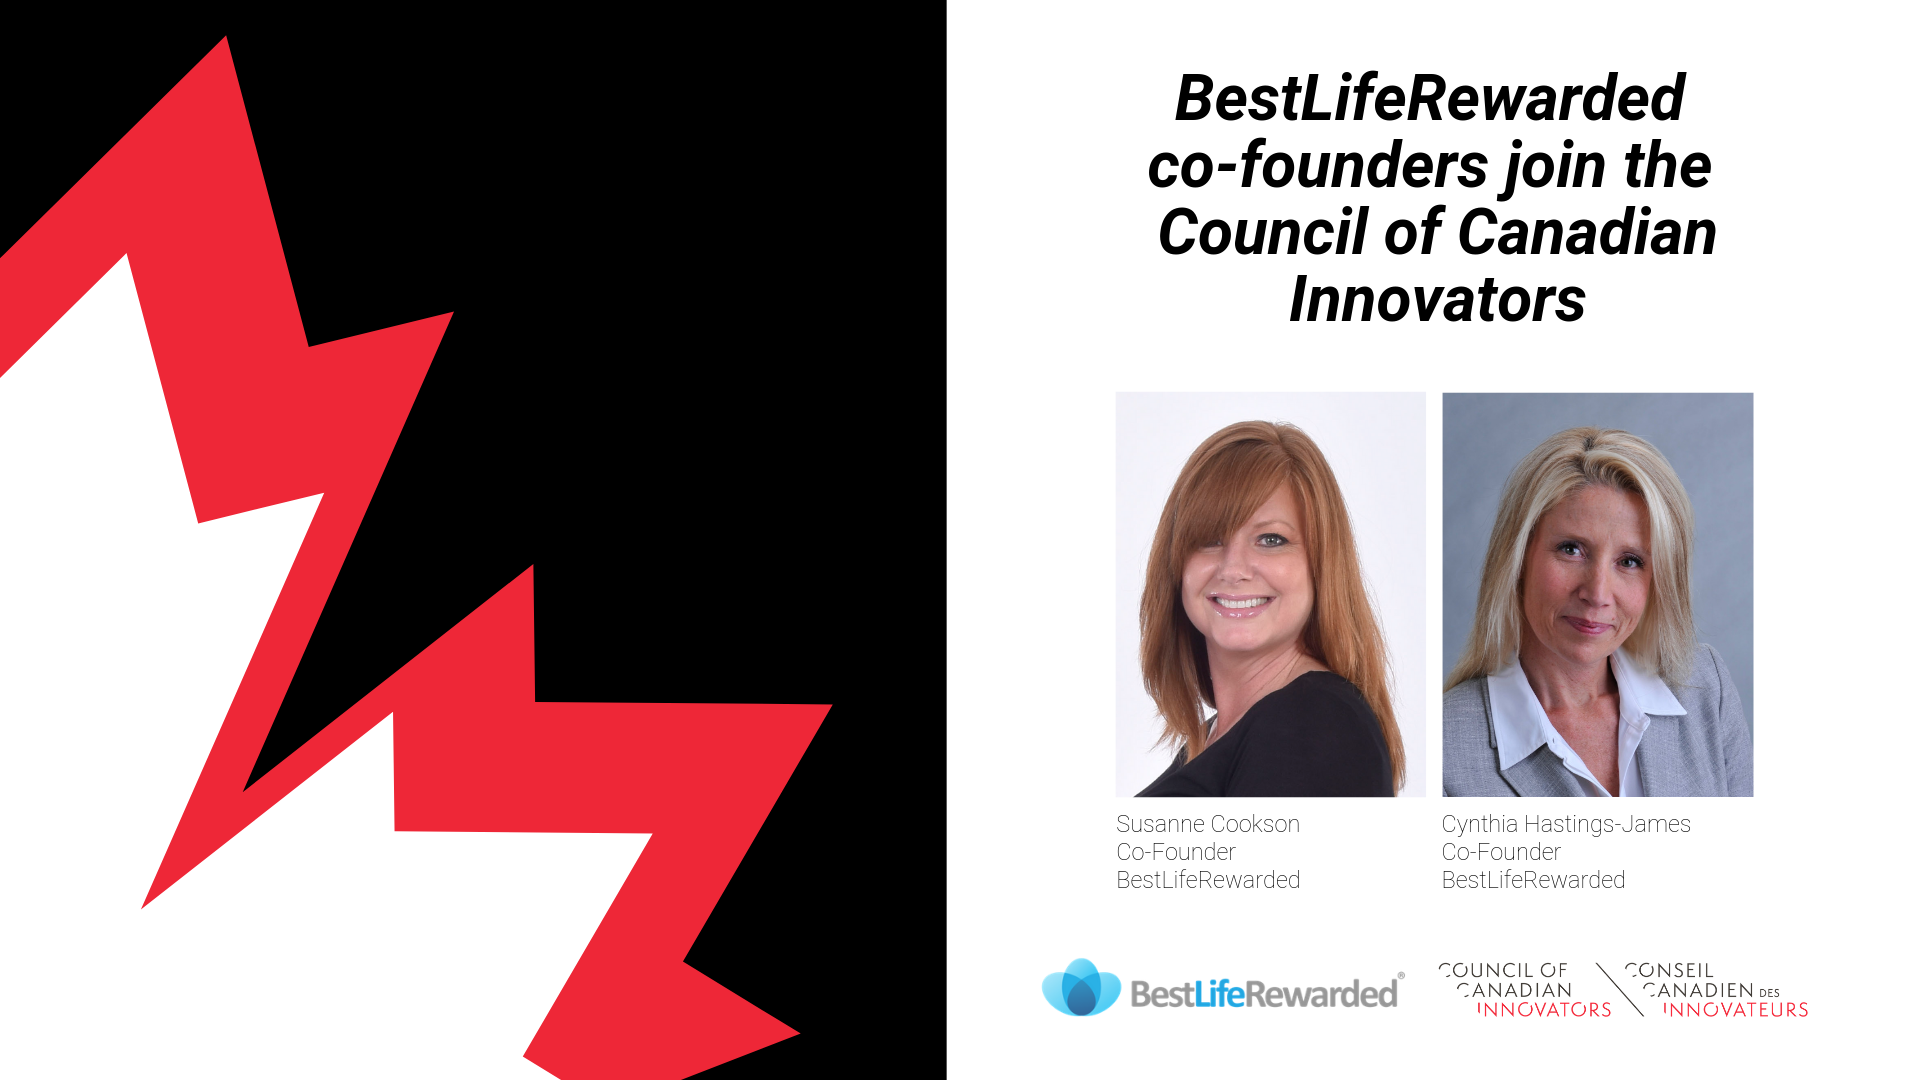 BestLifeRewarded joins the Council of Canadian Innovators